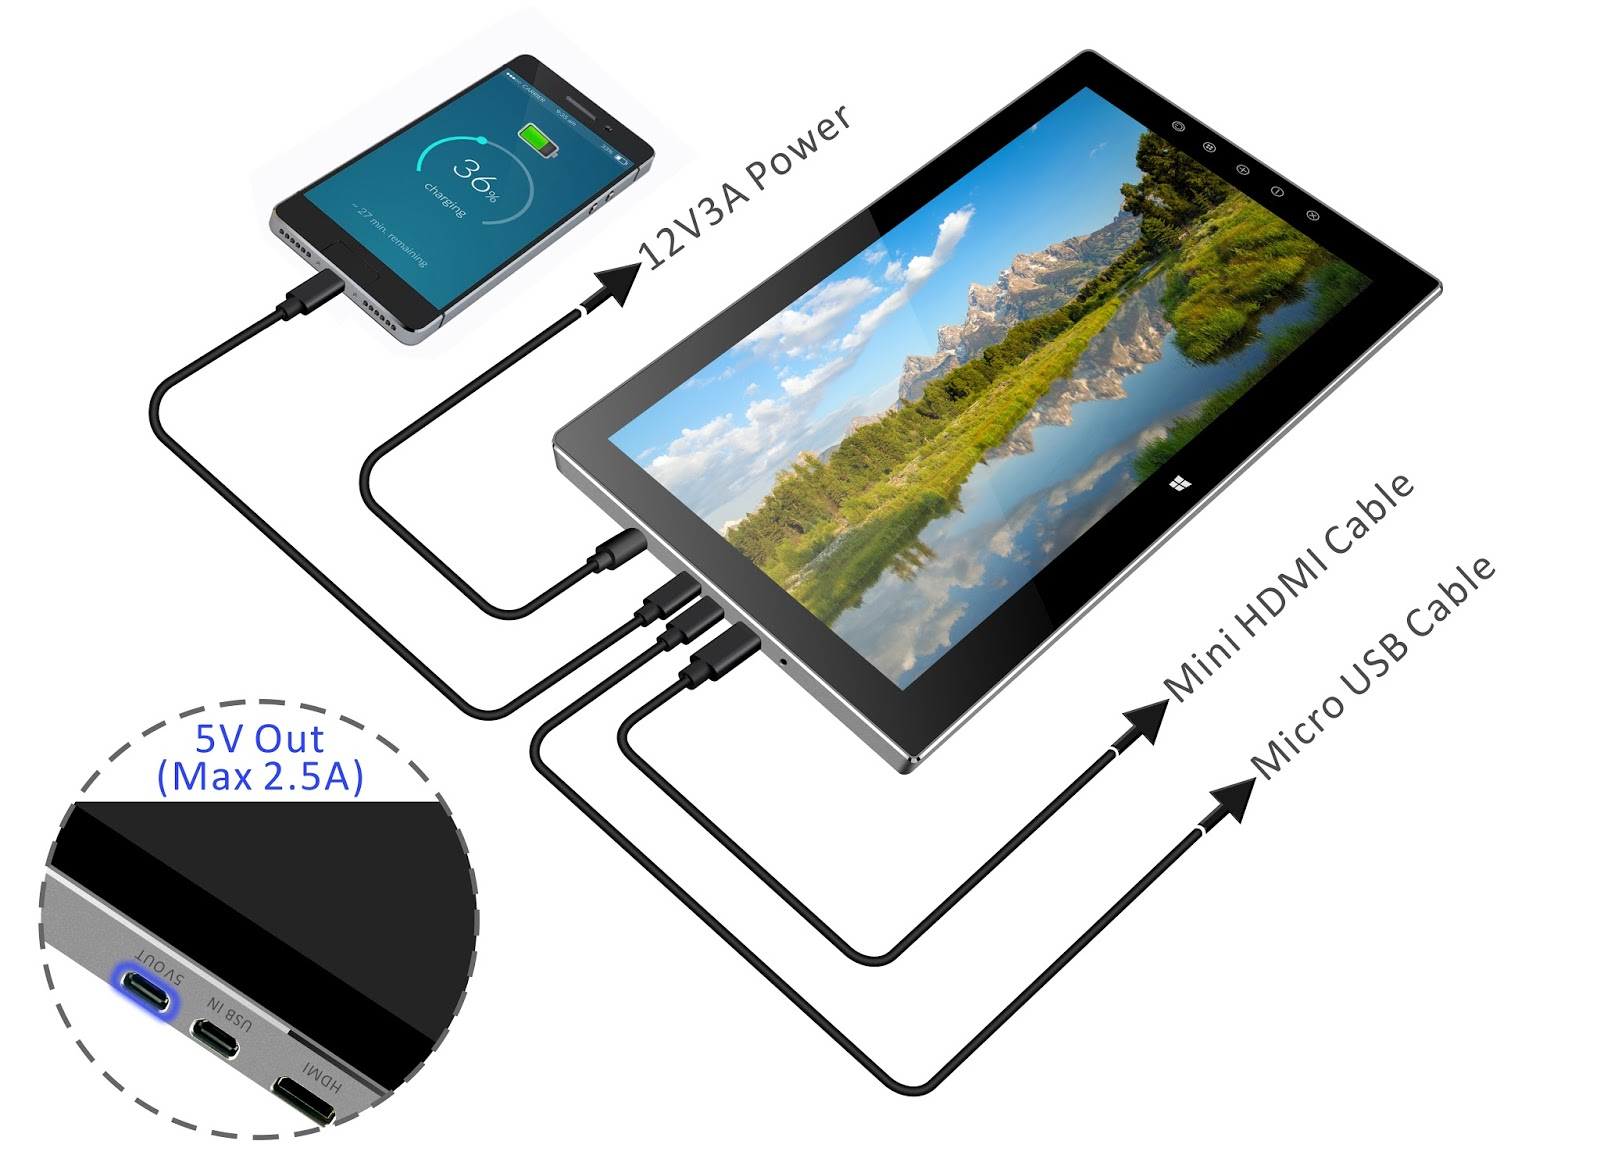 Magedok T133a 1080p Fhd Capacitive Touch Portable Monitor Magedok